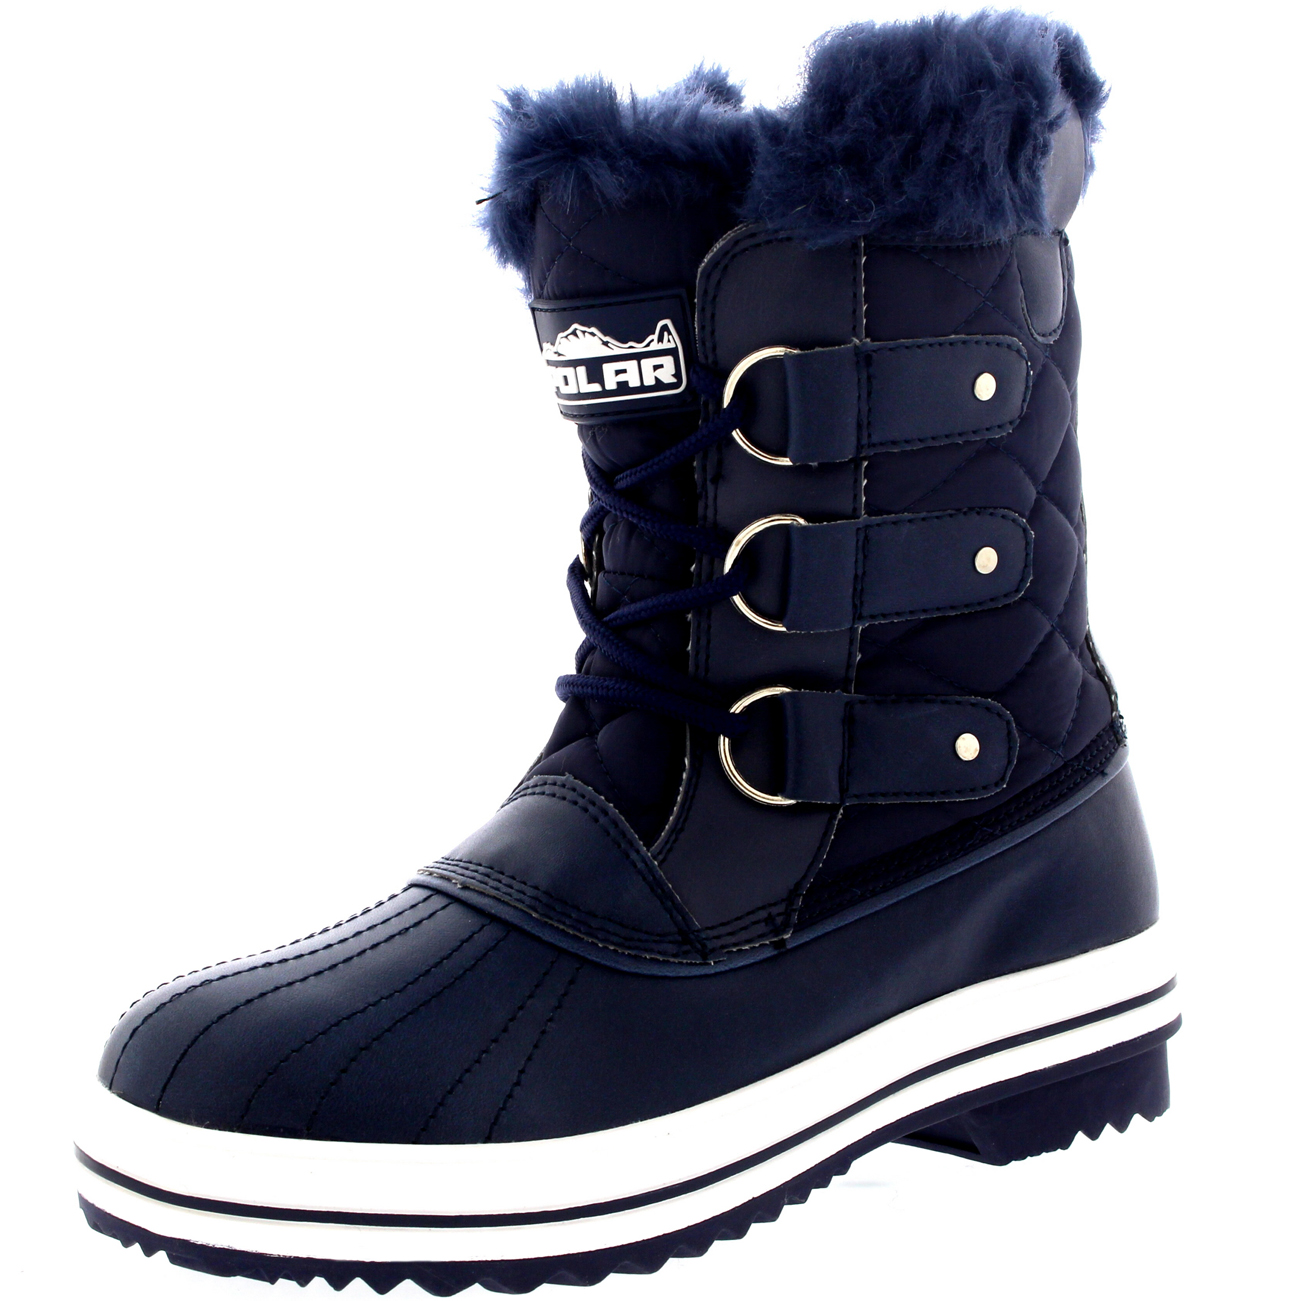 Womens Quilted Short Duck Fur Lined Rain Lace Up Muck Snow Winter ...